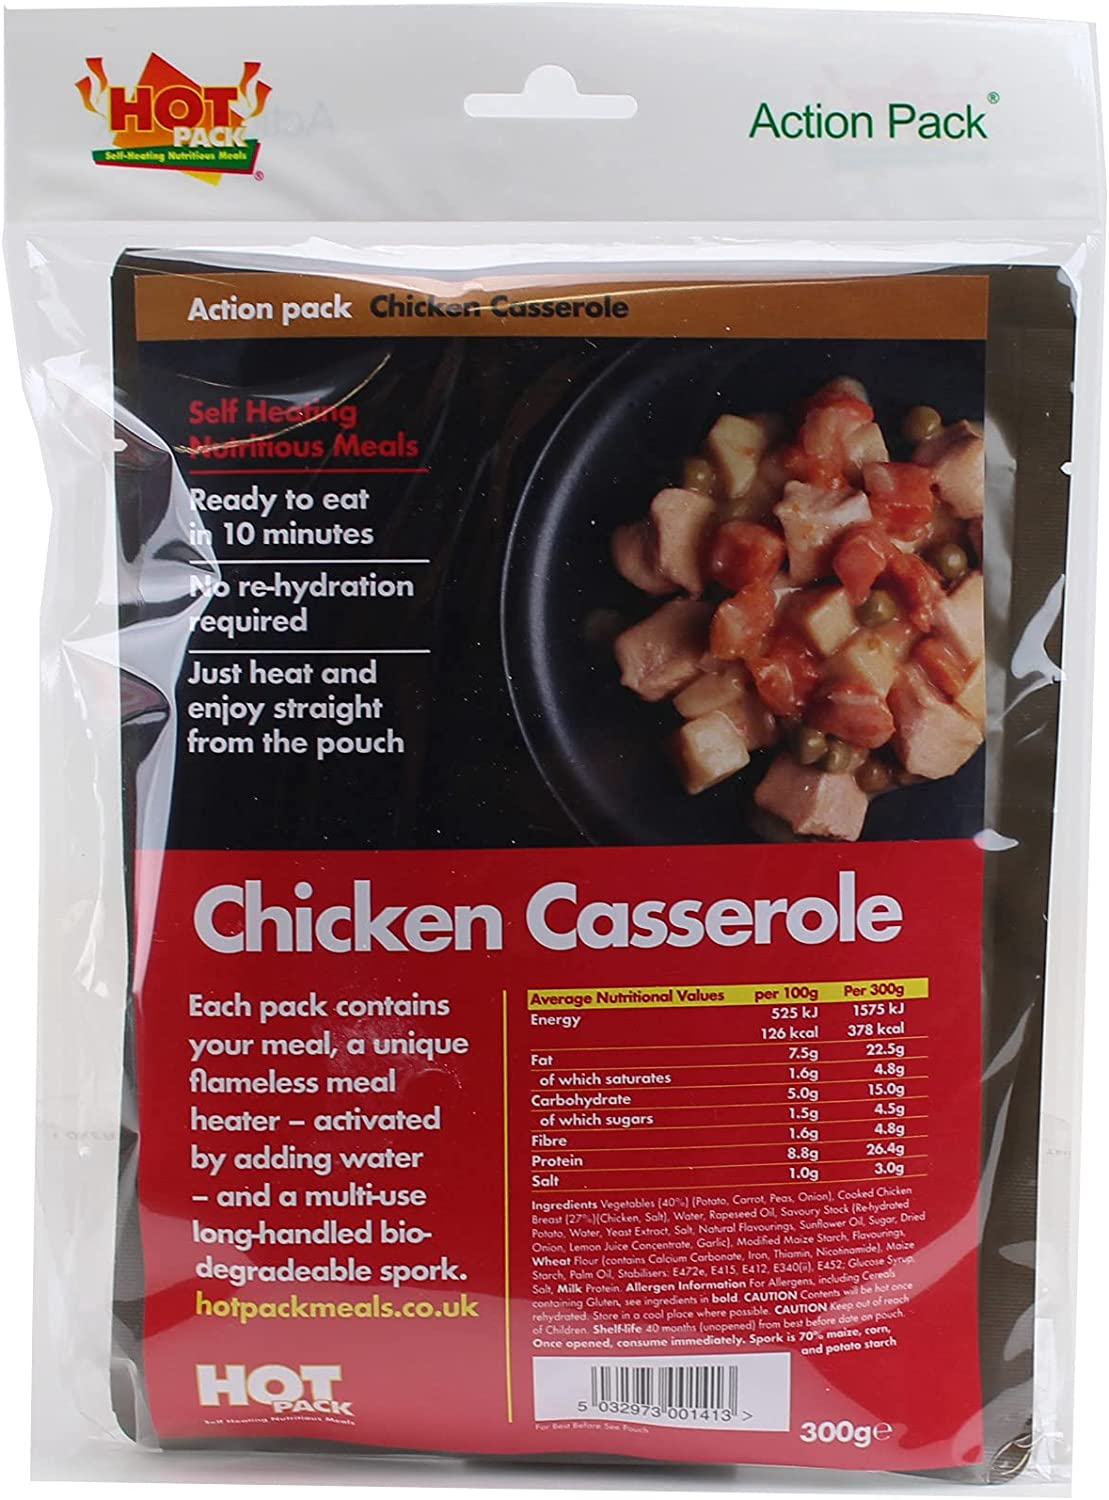 HOT PACK SELF HEATING MEAL IN A BOX CHICKEN CASSEROLE Pack of 12